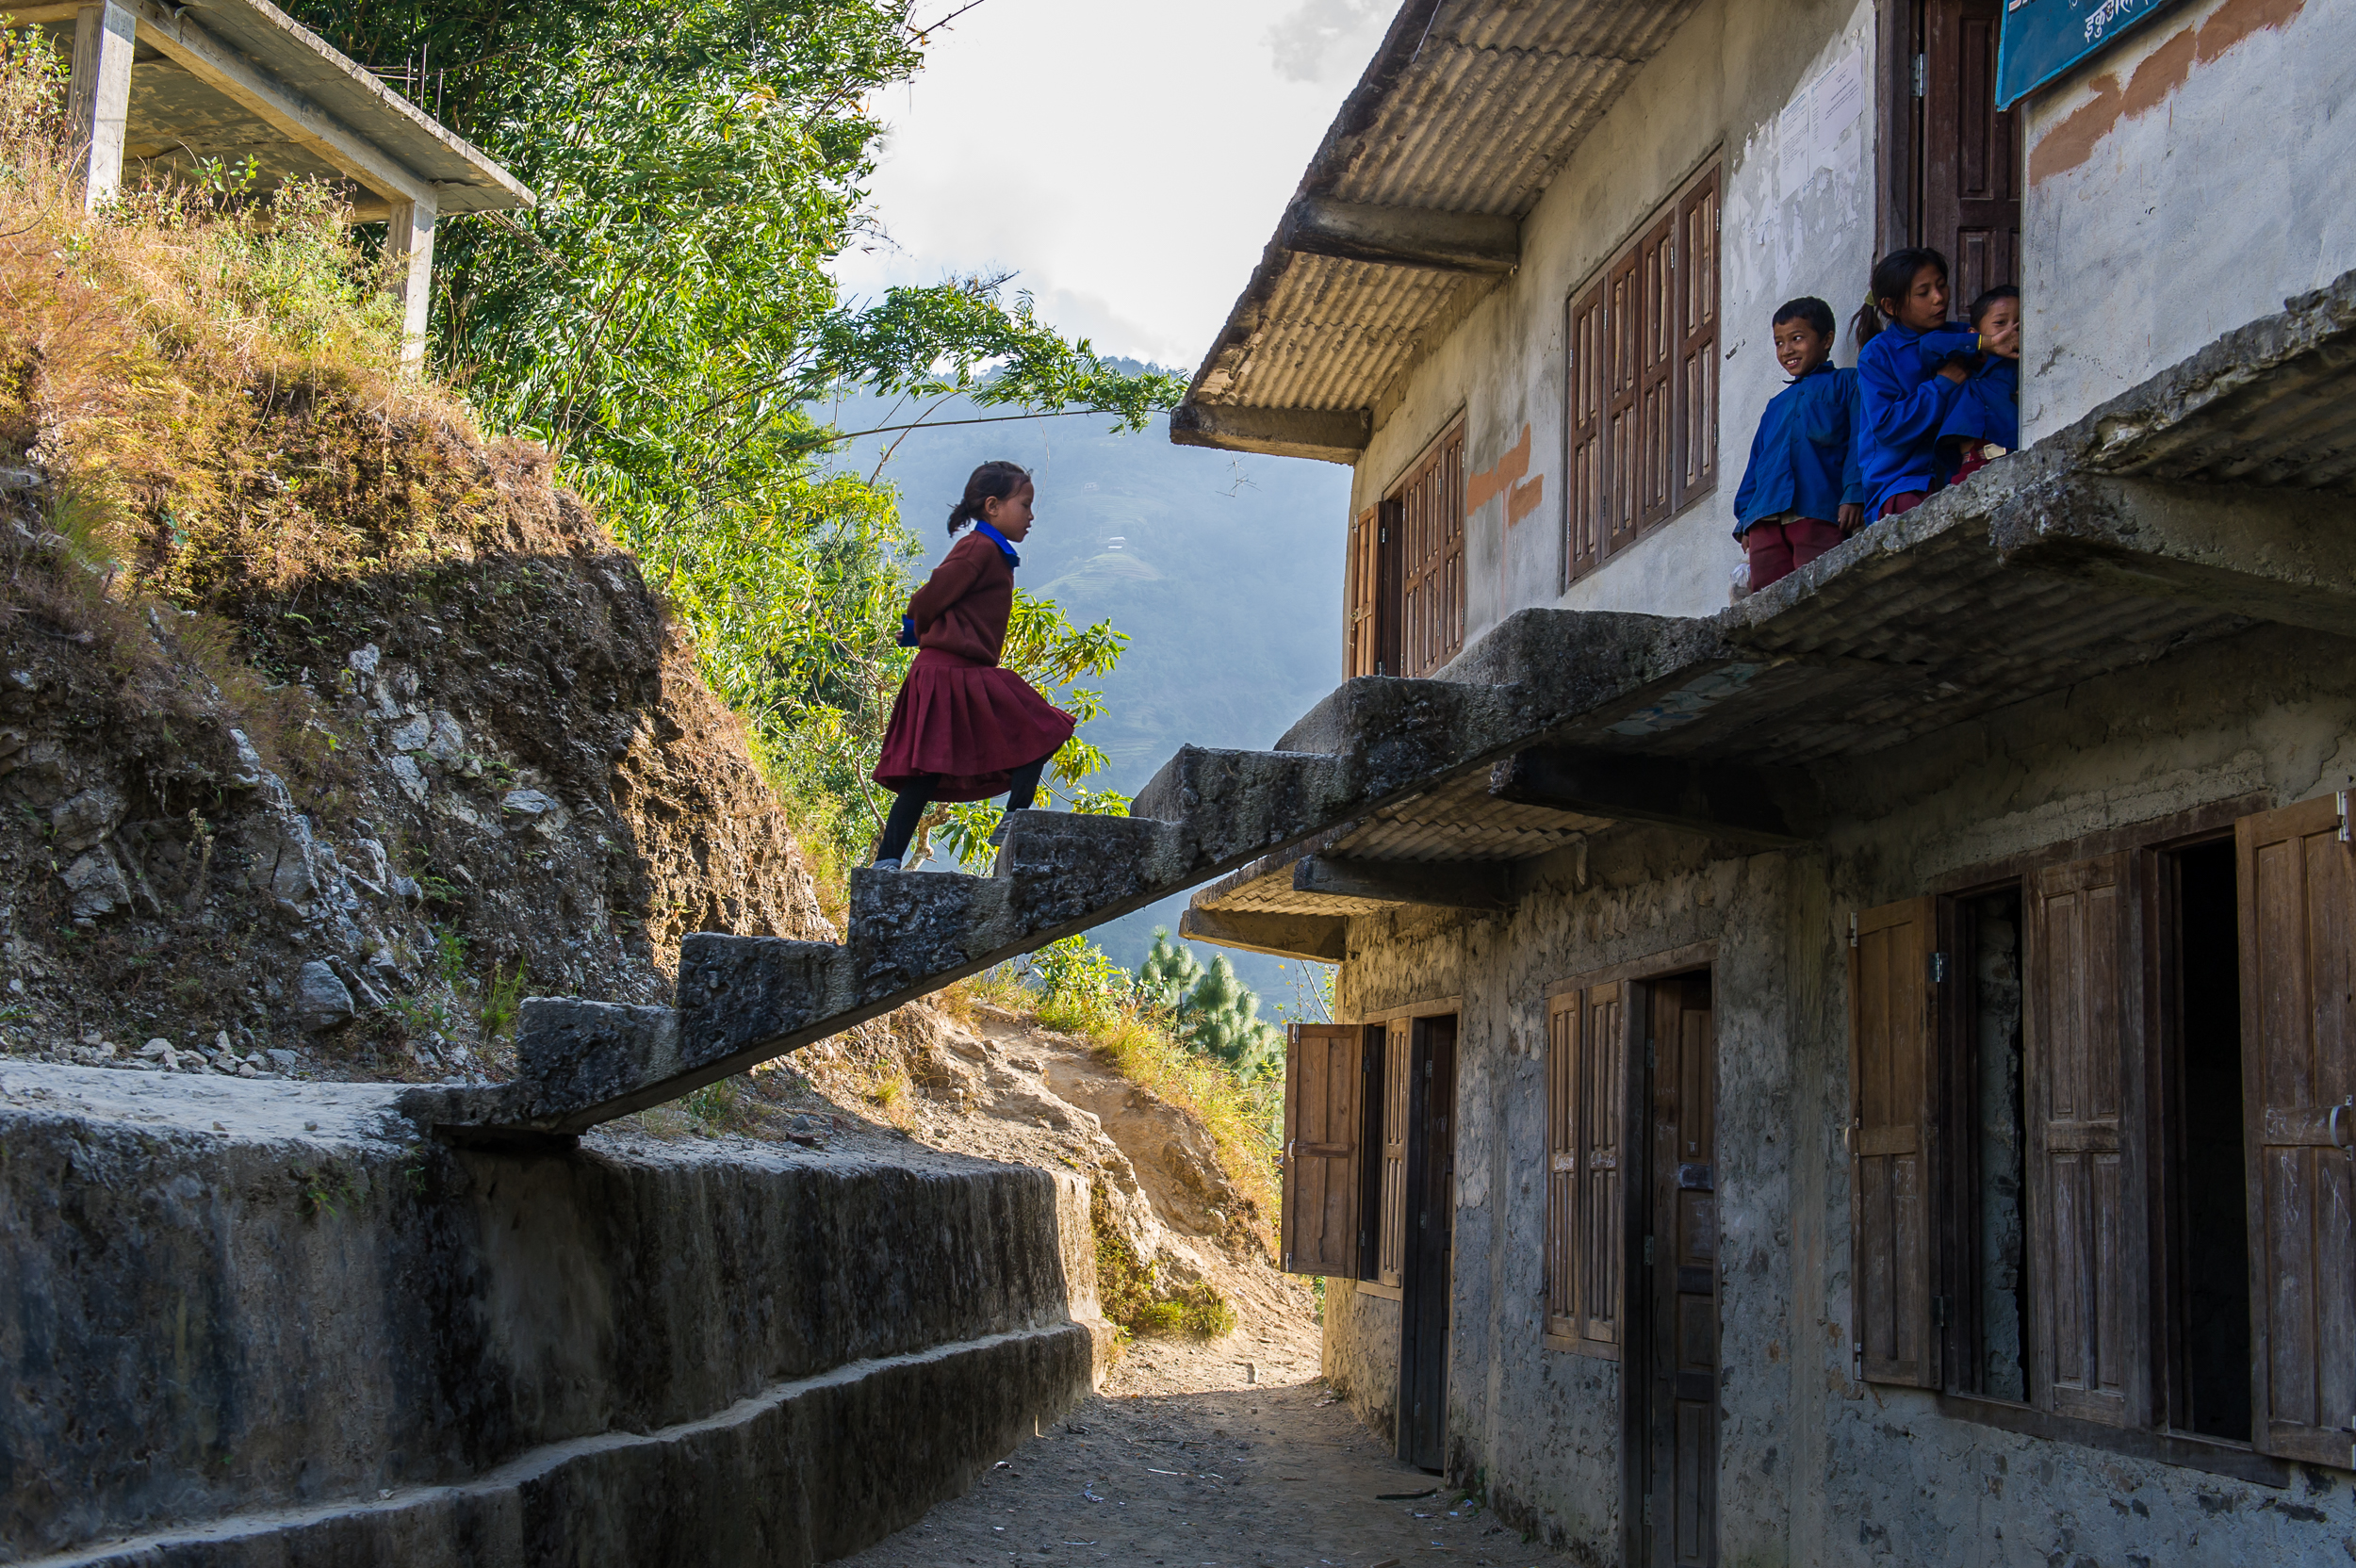 Infrastructure at many Nepali schools is lacking.